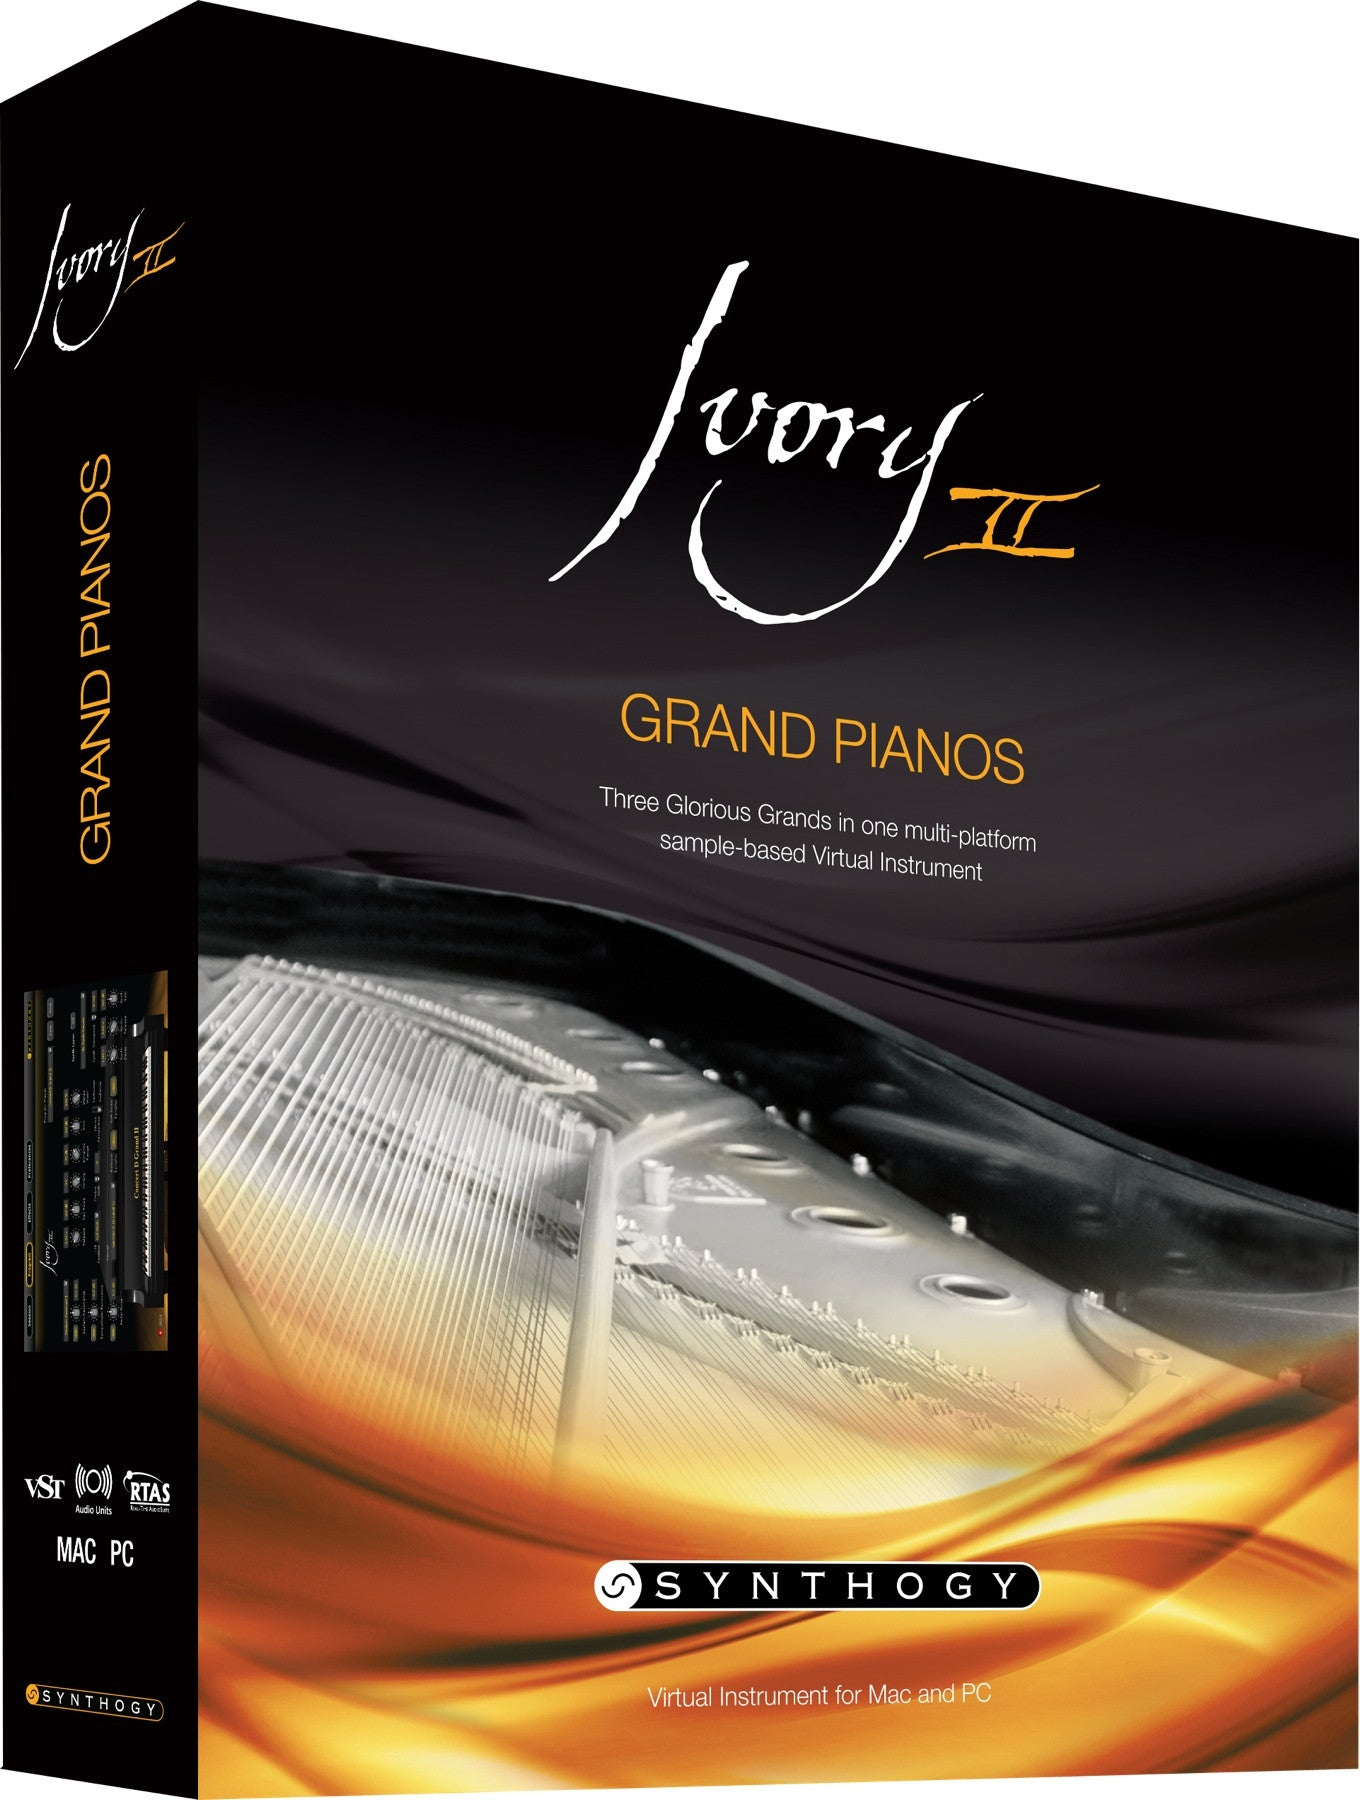 Synthogy Ivory II Grand Pianos (boxed) - Sinamex Recording Store